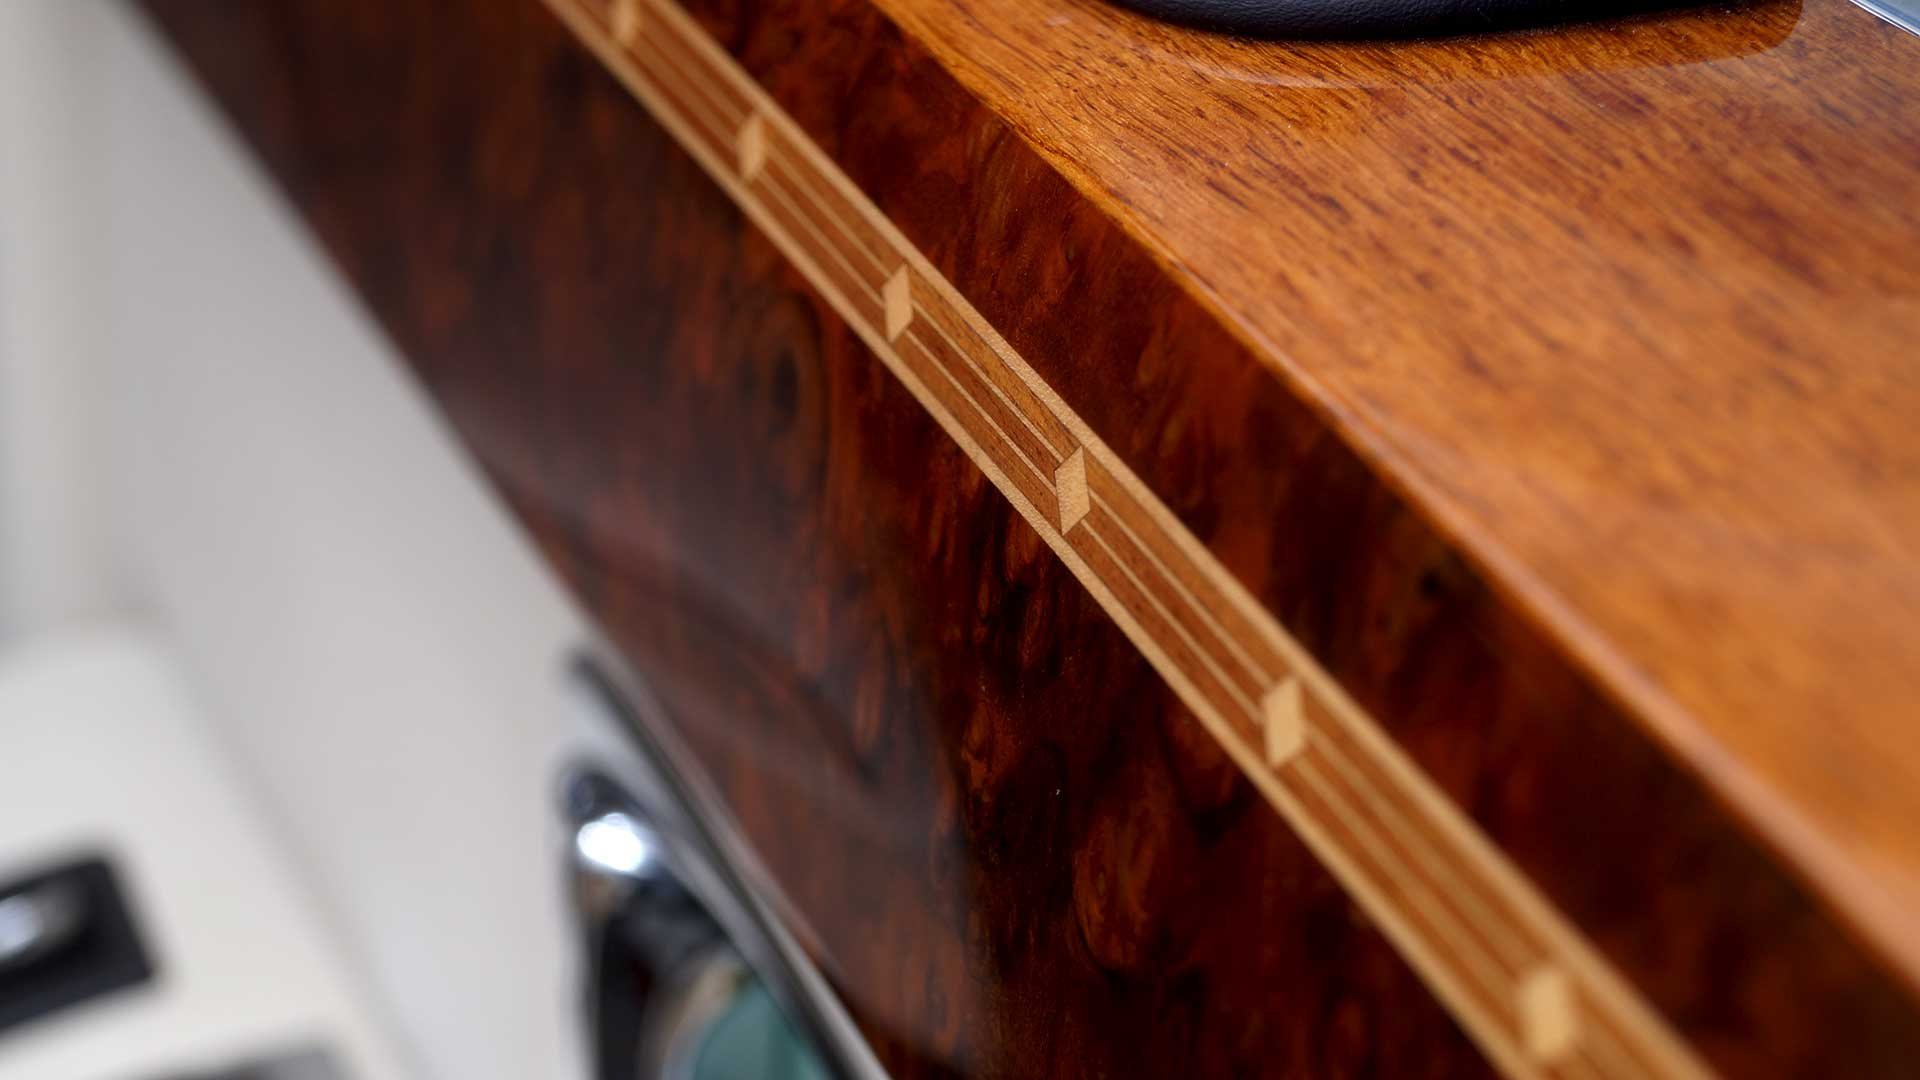 Rolls-Royce Phantom Walnut Marquetry Close-Up